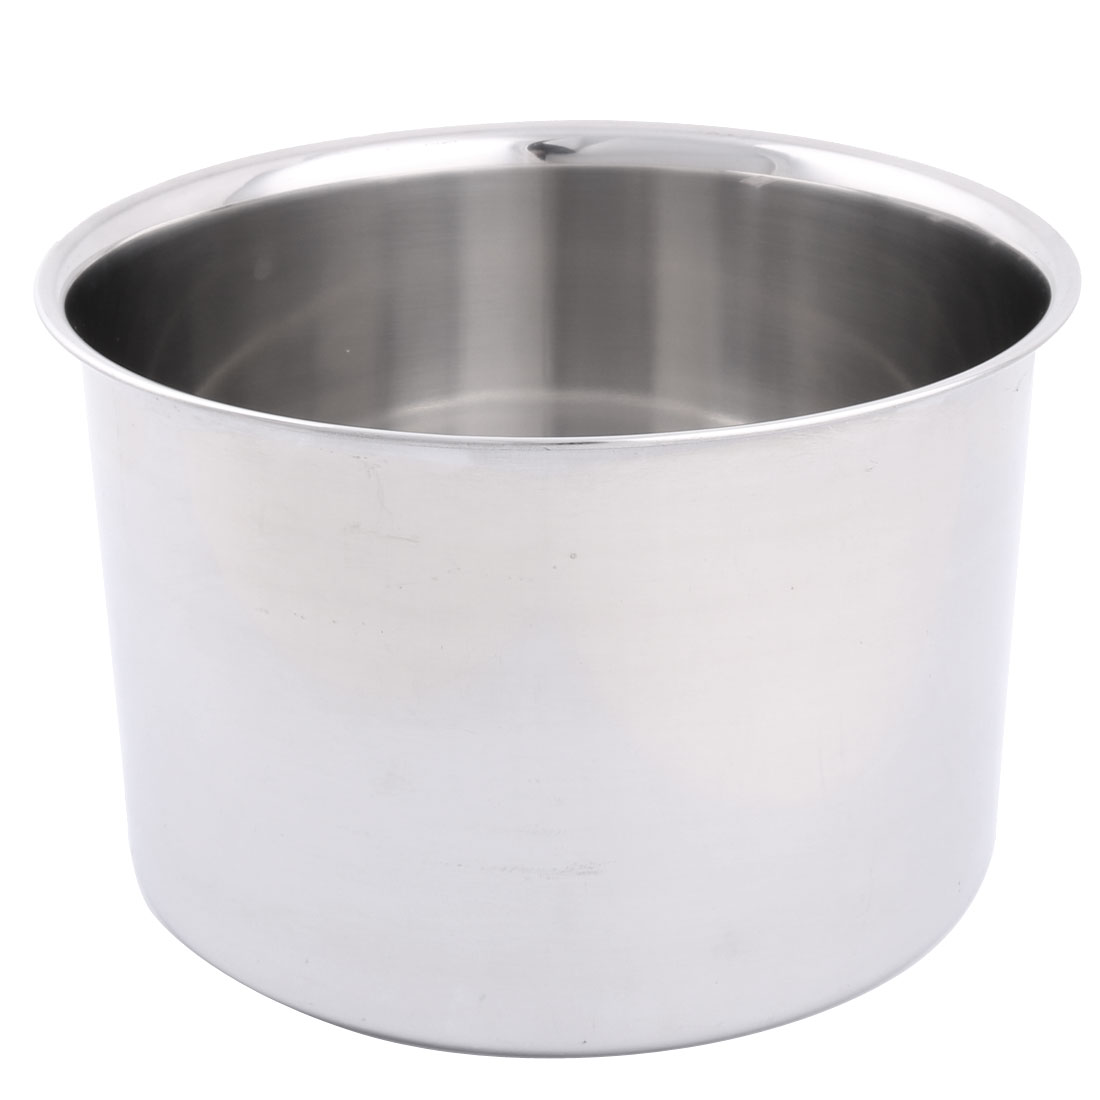 Home Restaurant Stainless Steel Round Design Porridge Food Soup Dish Plate 20cm Dia